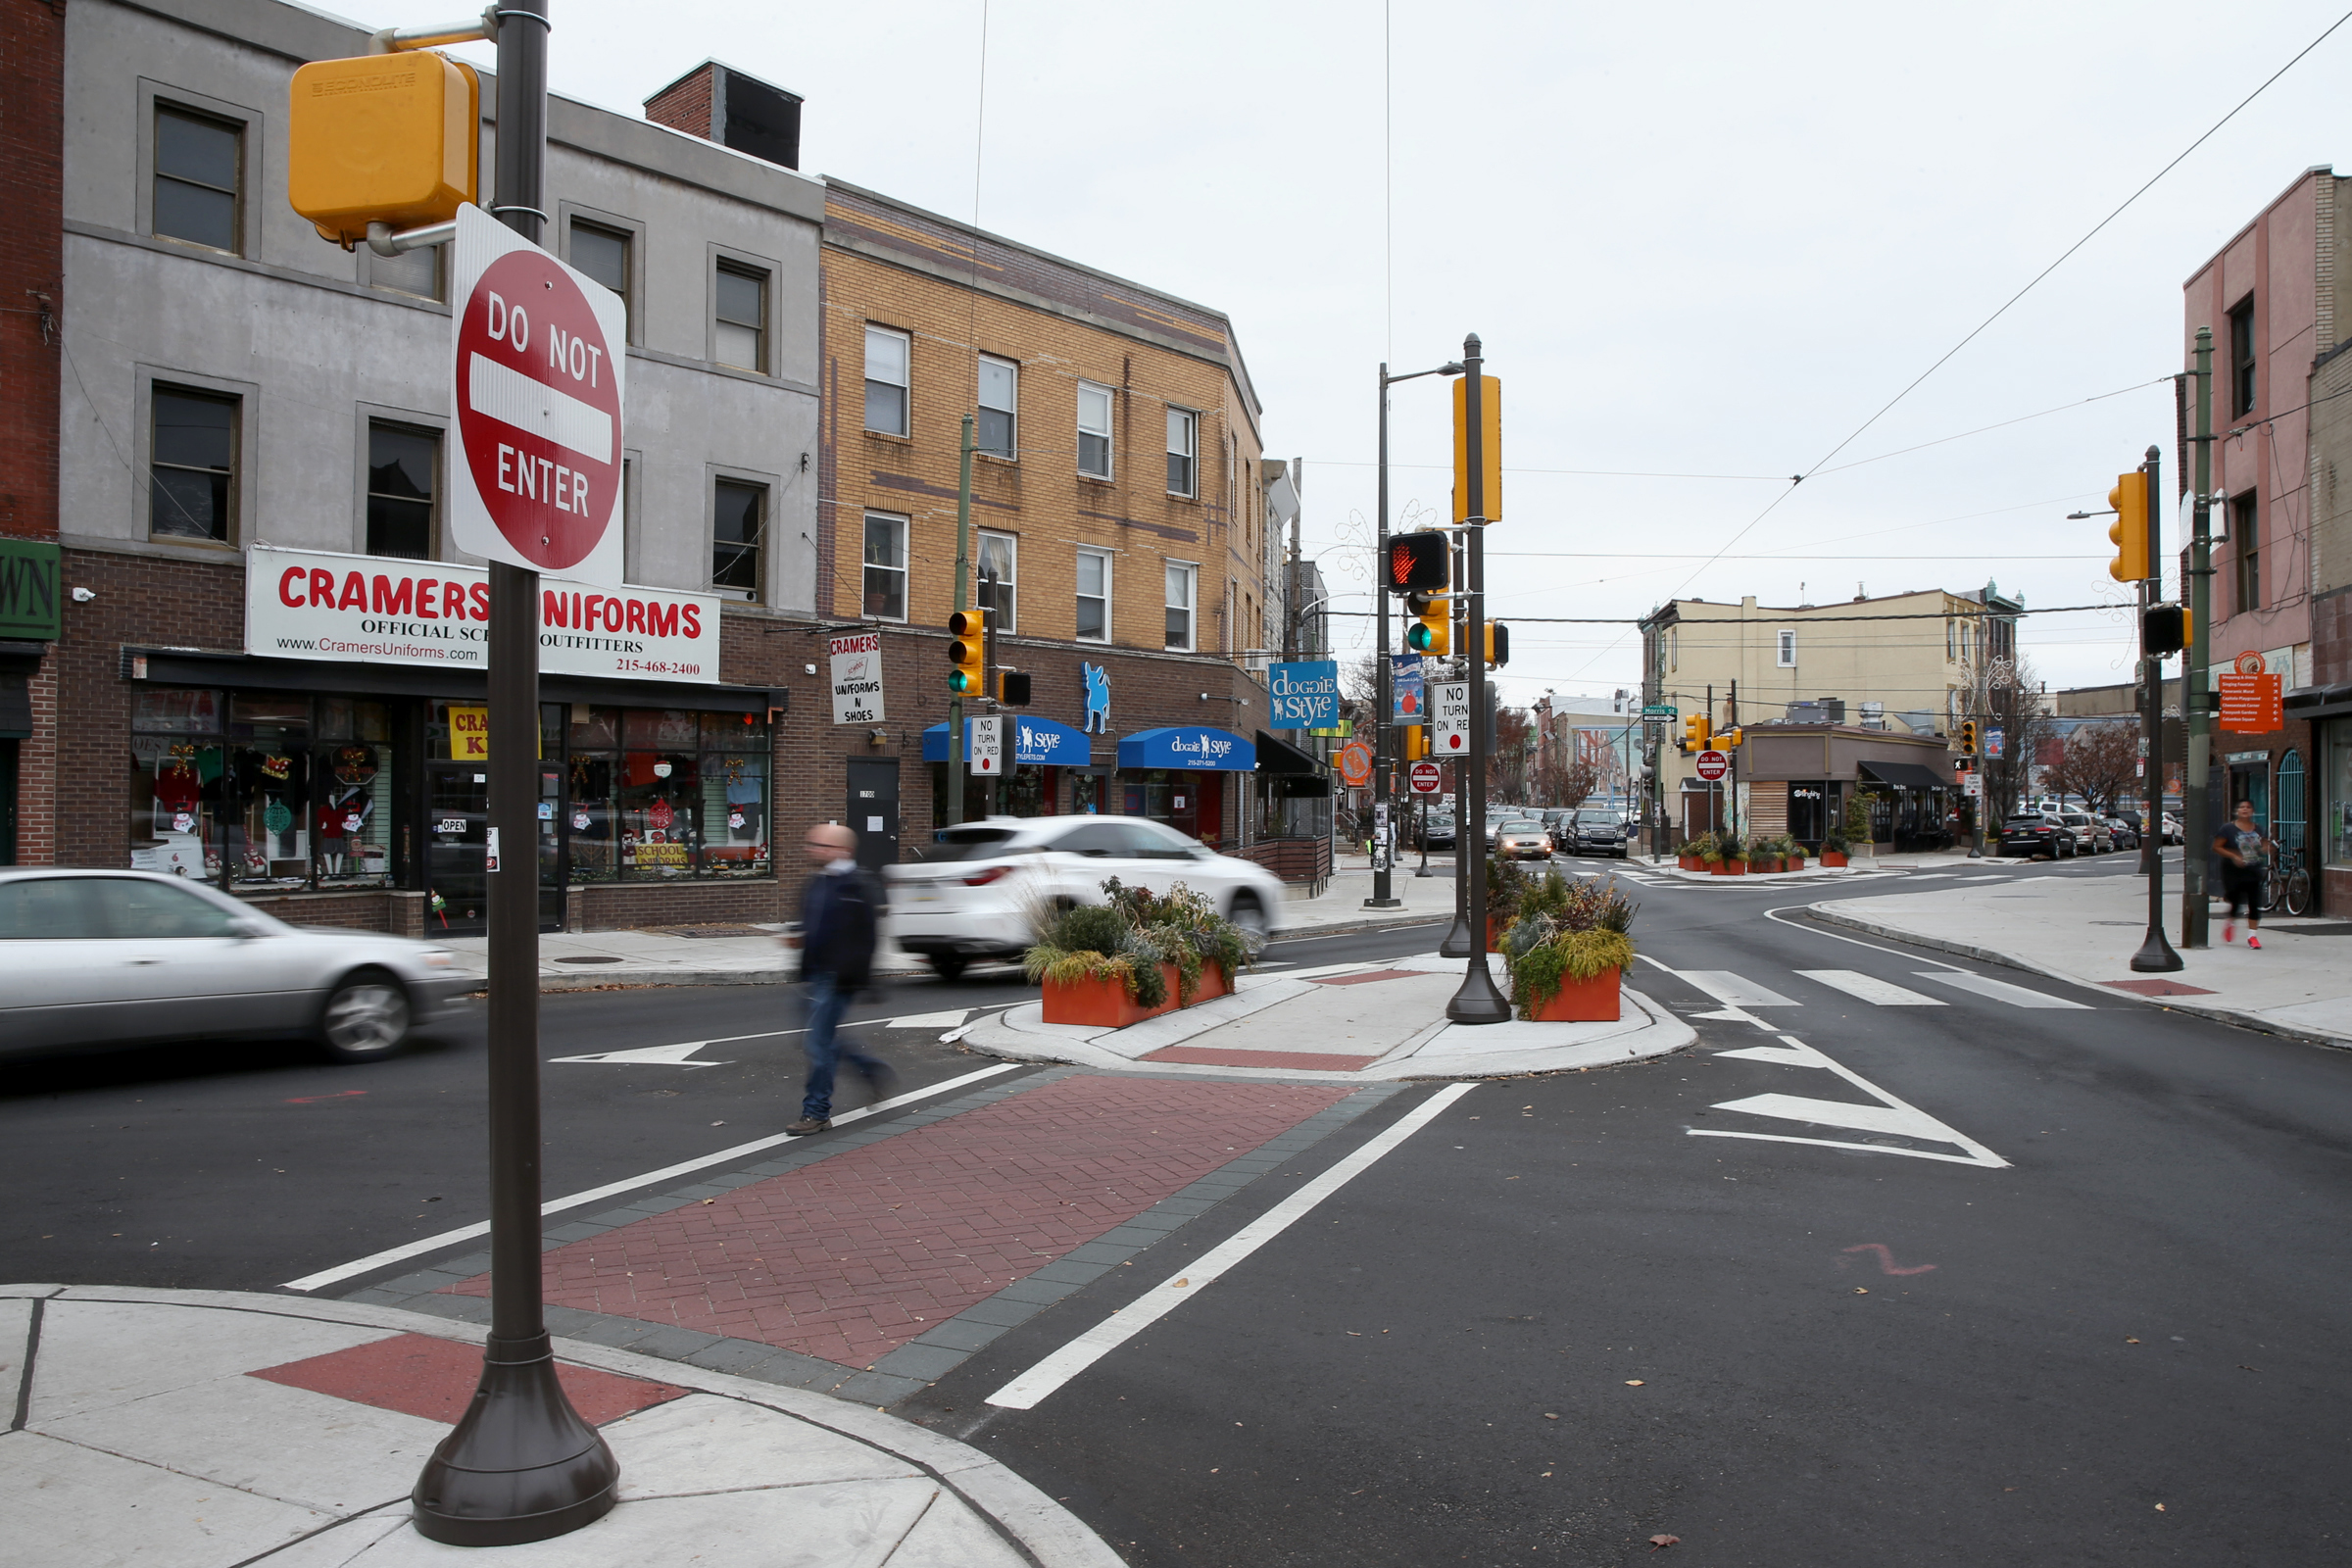 A new pedestrian crosswalk at 12th and Passyunk uses the same red, stamped asphalt that will be installed on South Broad Street. The intersection was just rebuilt to make it safer.